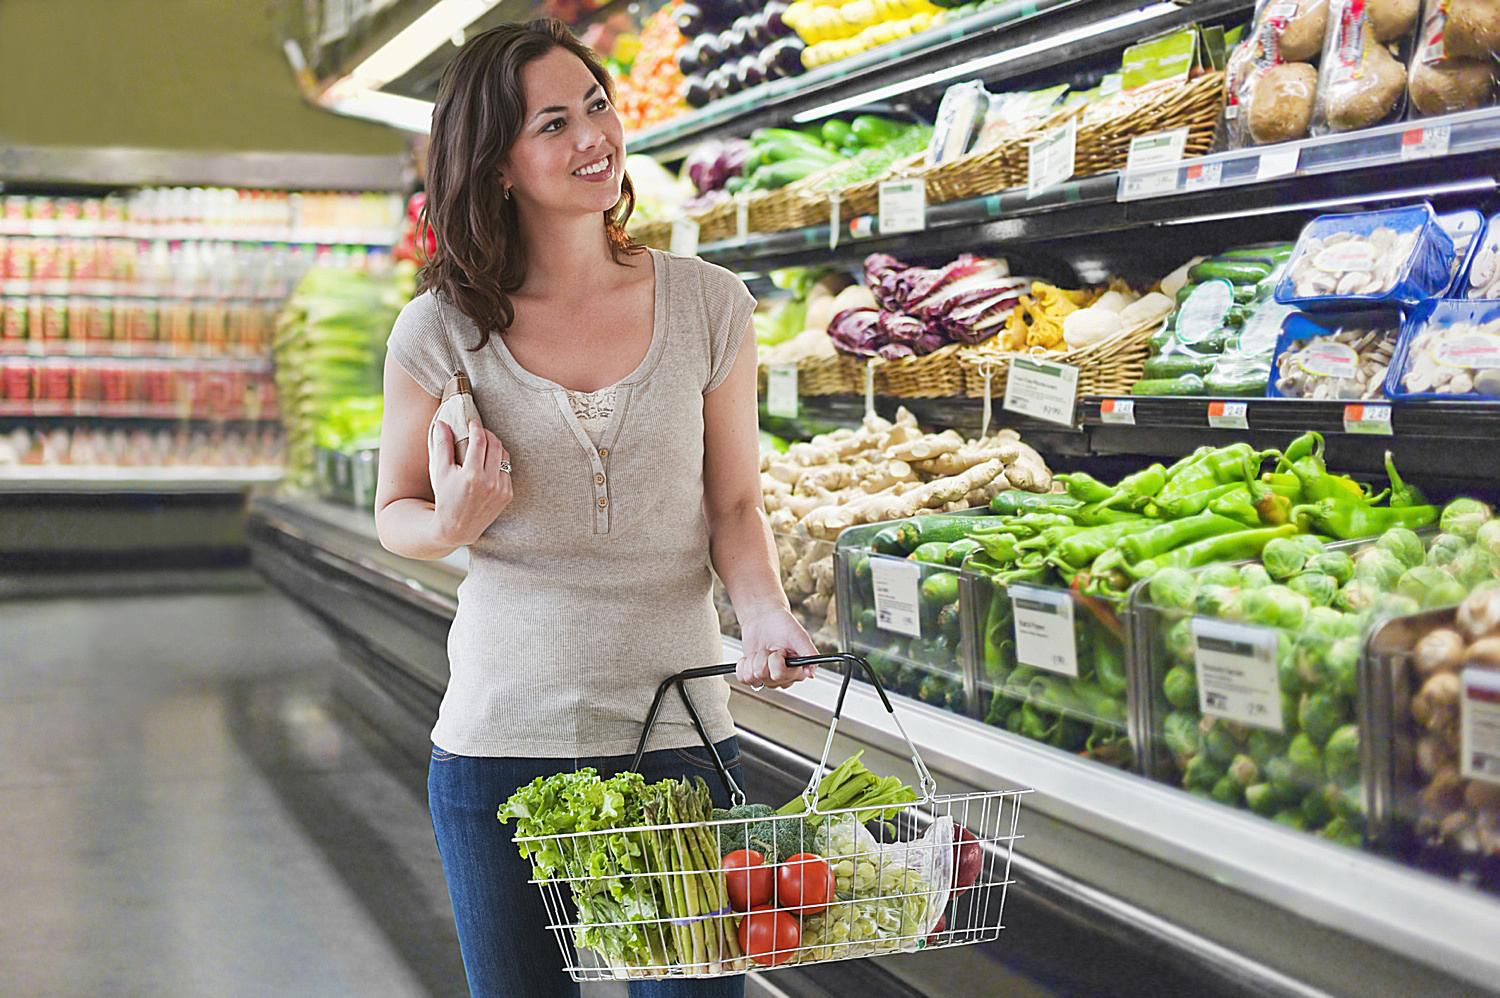 How Can I Grocery Shop Safely in The Time of Covid – 19?